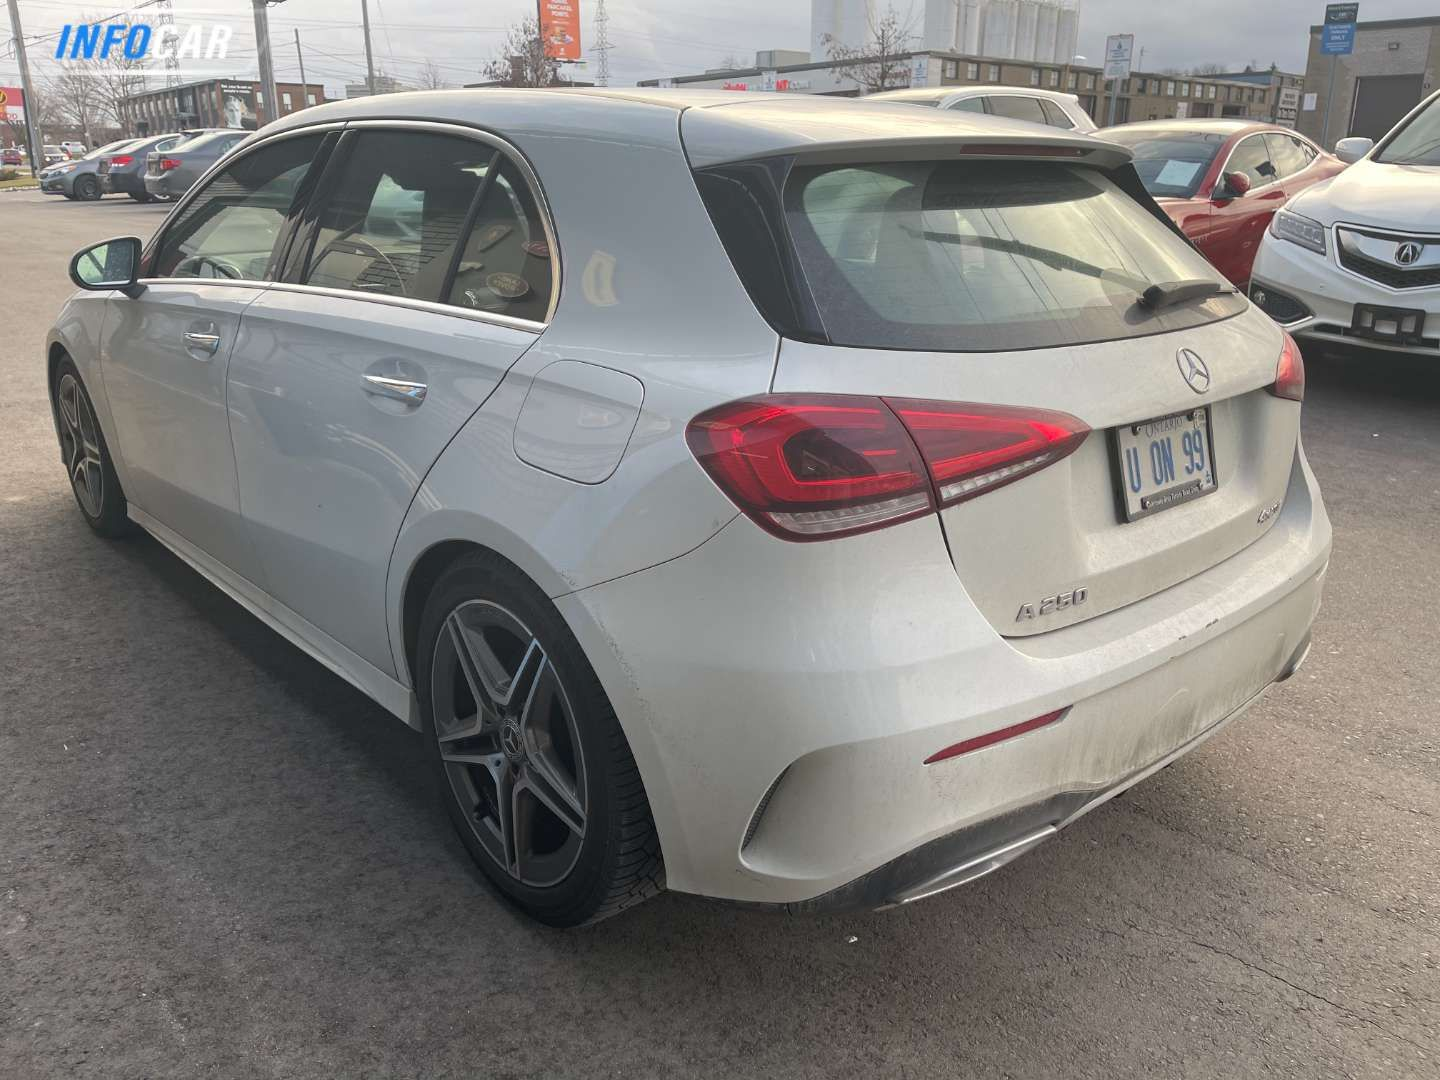 2019 Mercedes-Benz A-Class A250 Hatch - INFOCAR - Toronto's Most Comprehensive New and Used Auto Trading Platform